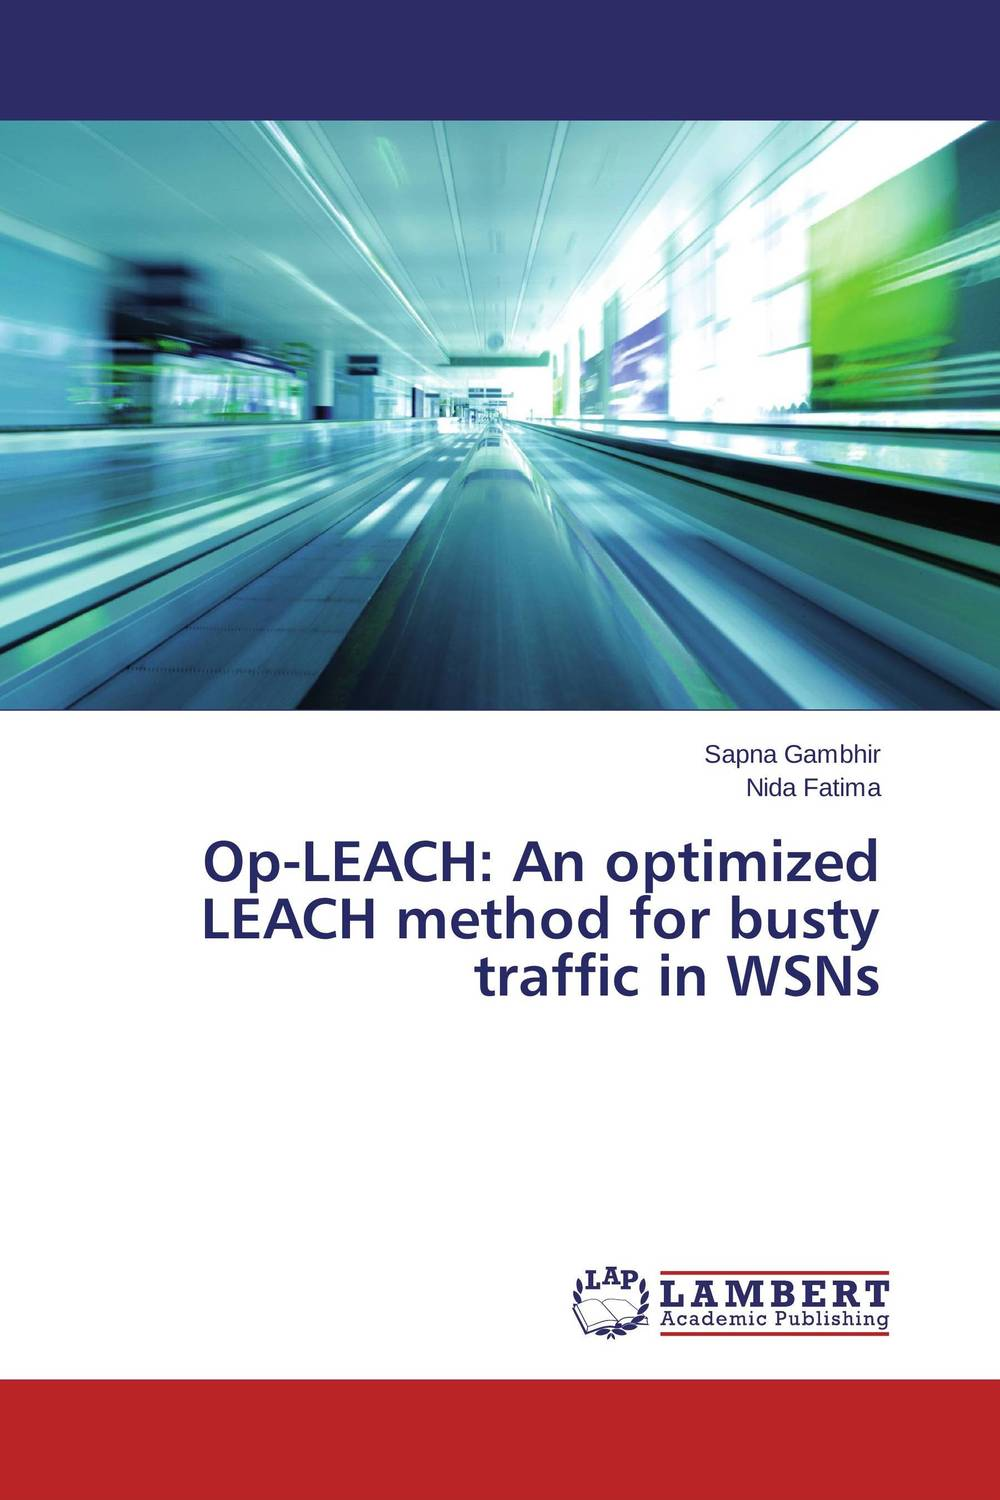 Op-LEACH: An optimized LEACH method for busty traffic in WSNs intrusion detection system architecture in wireless sensor network